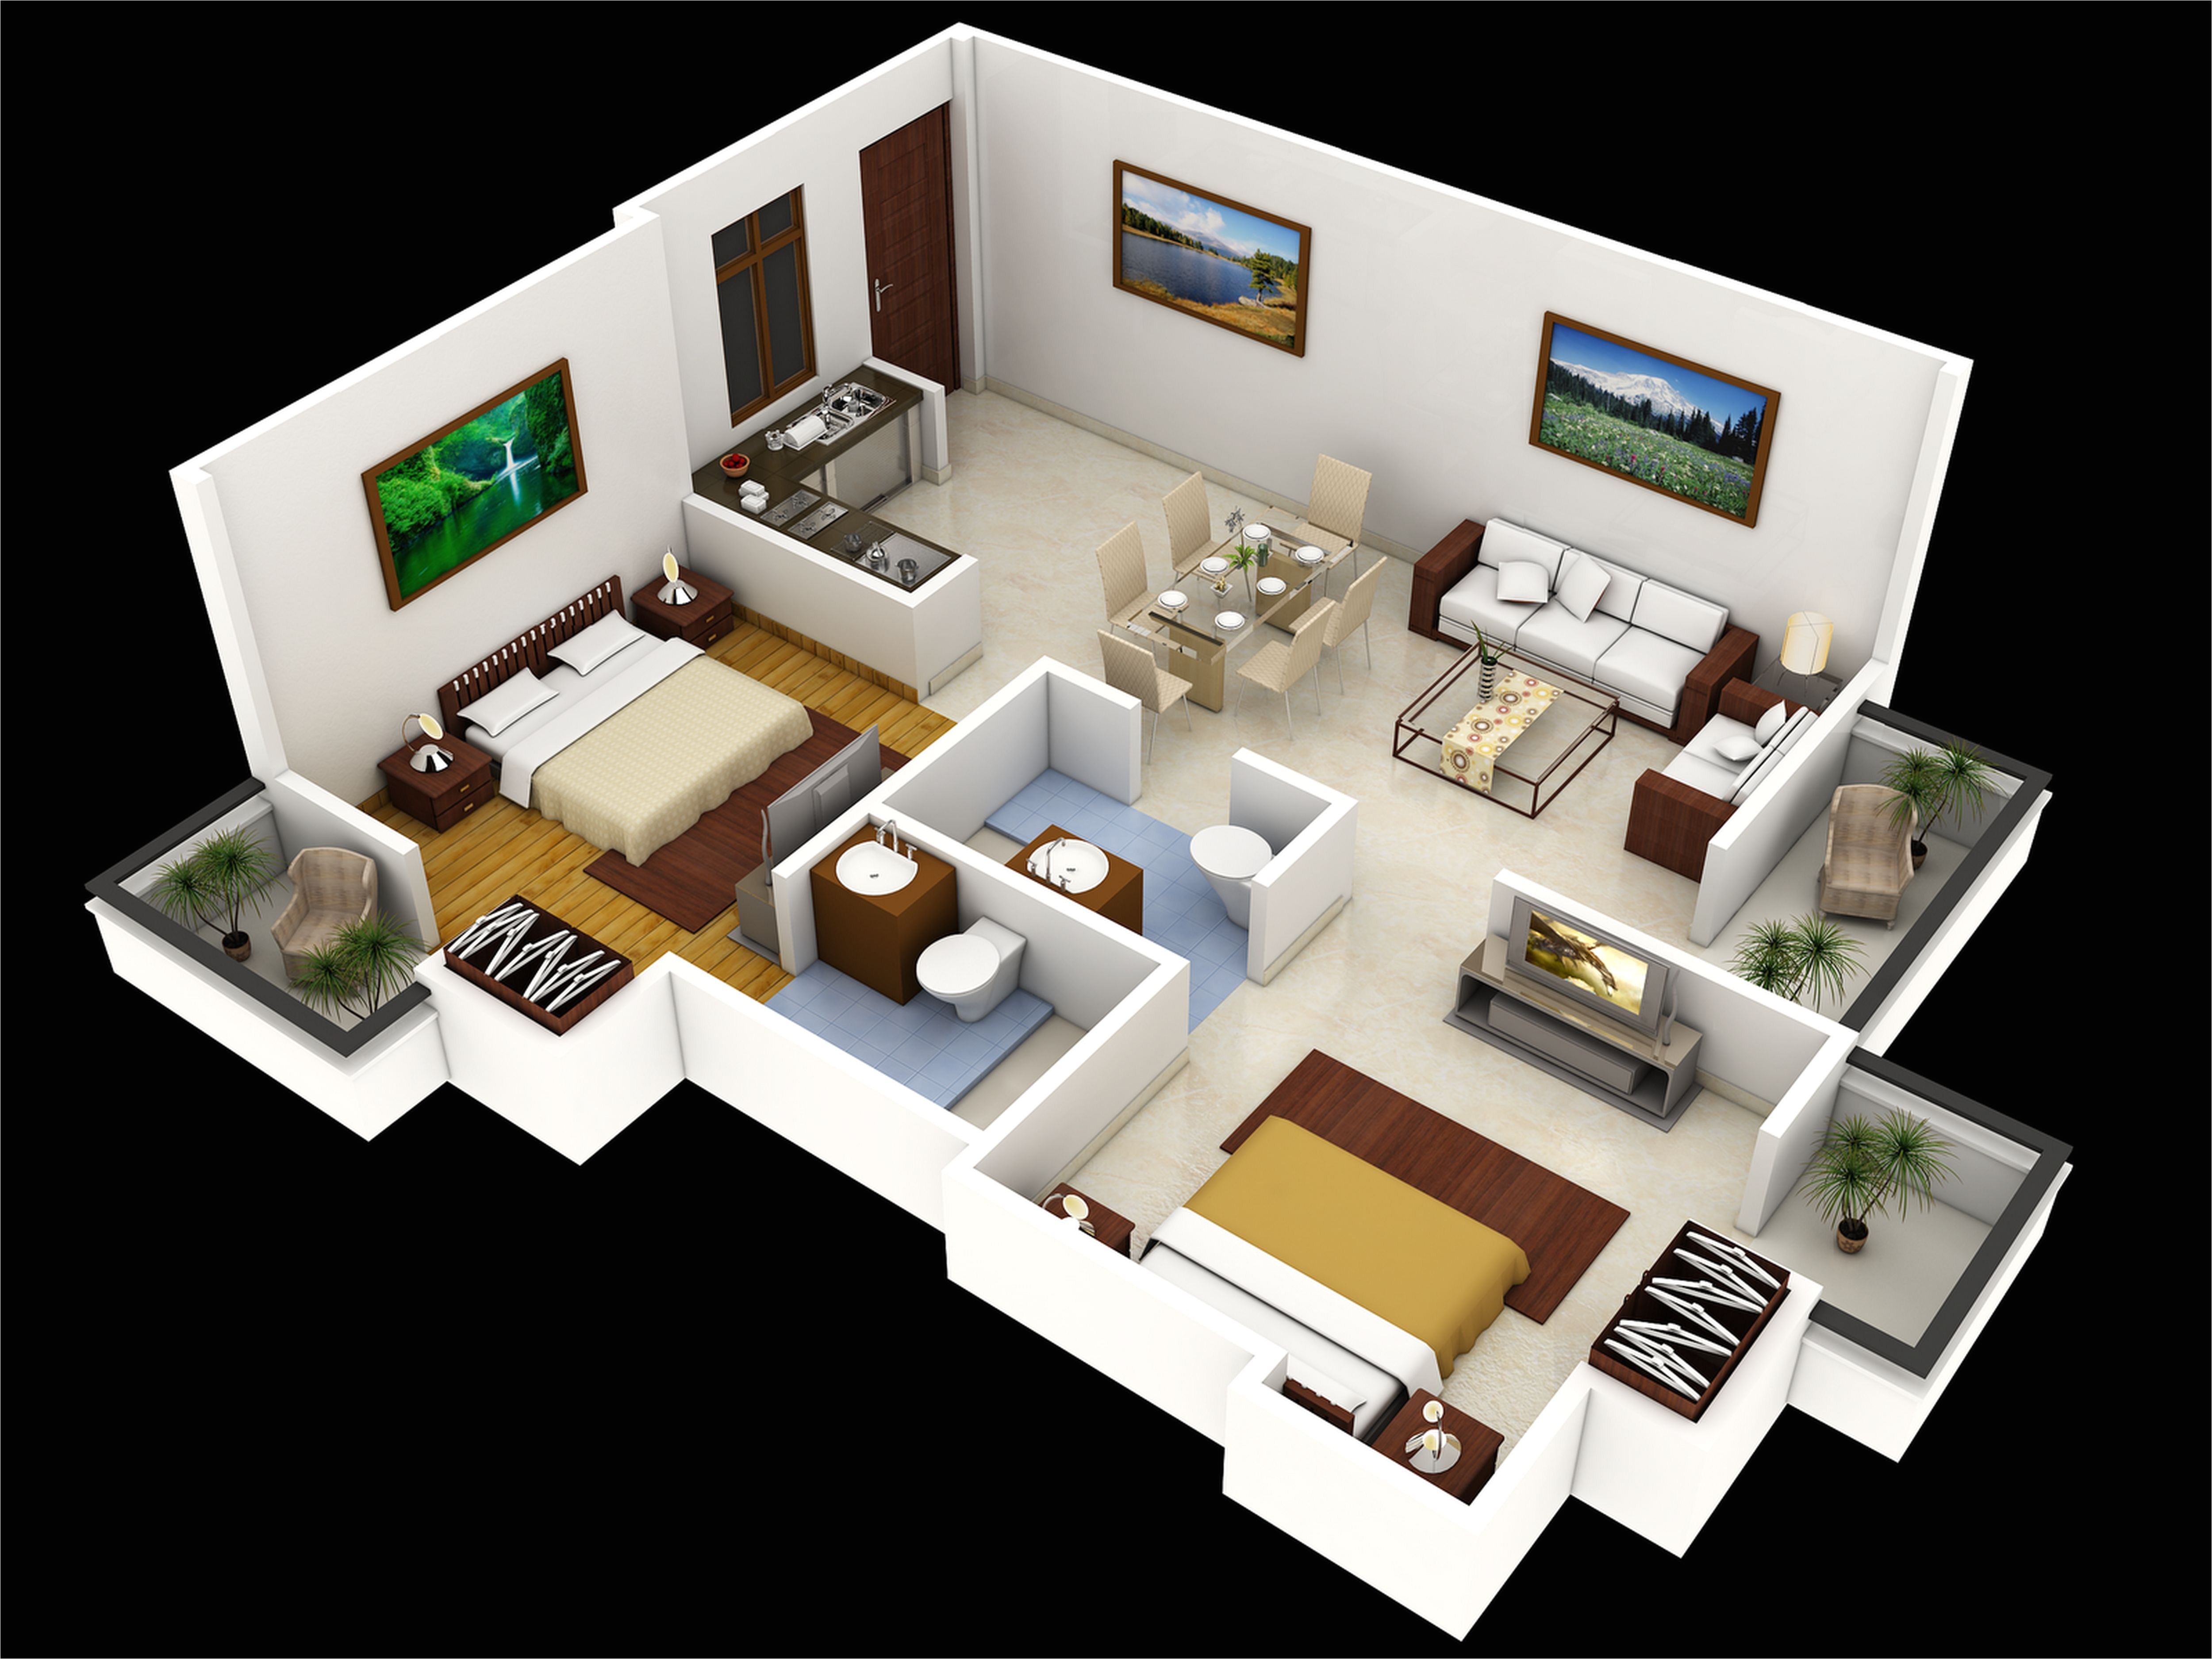 home decor plan 3d home plans free tritmonk online for modern home floor design ideas with image gallery download office